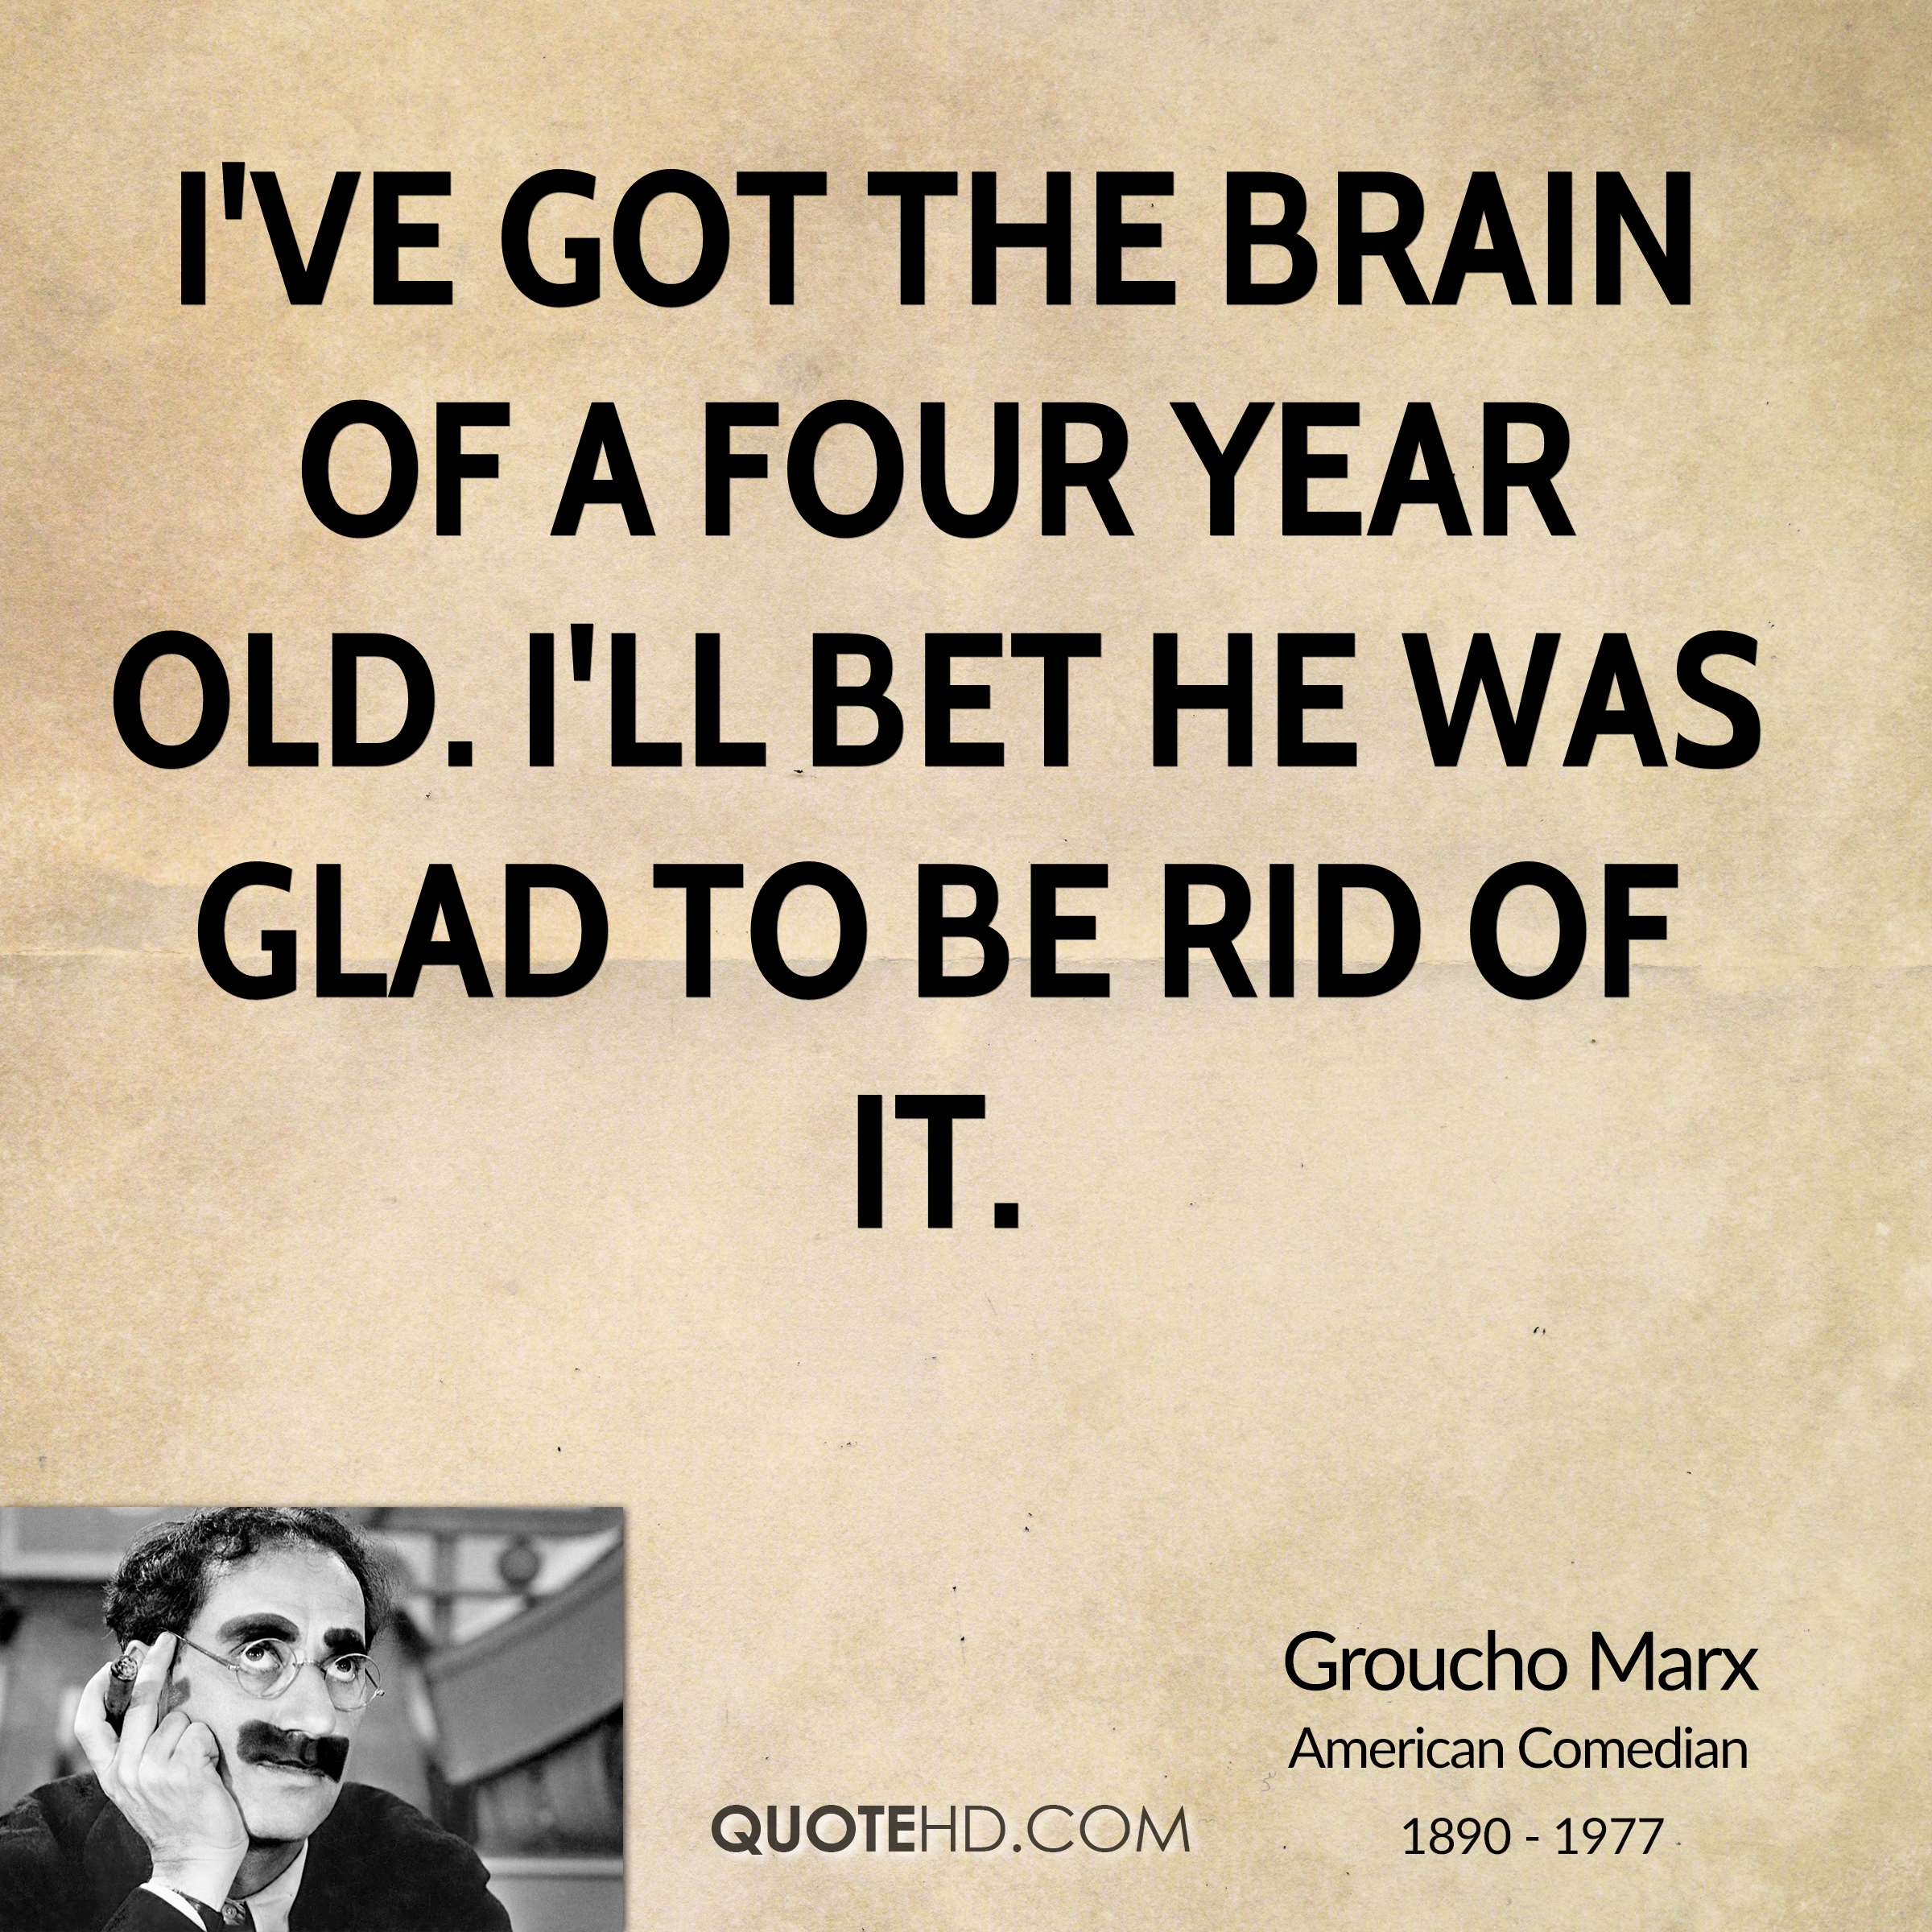 Funny Groucho Marx Quotes: 4 Year Old Quotes. QuotesGram